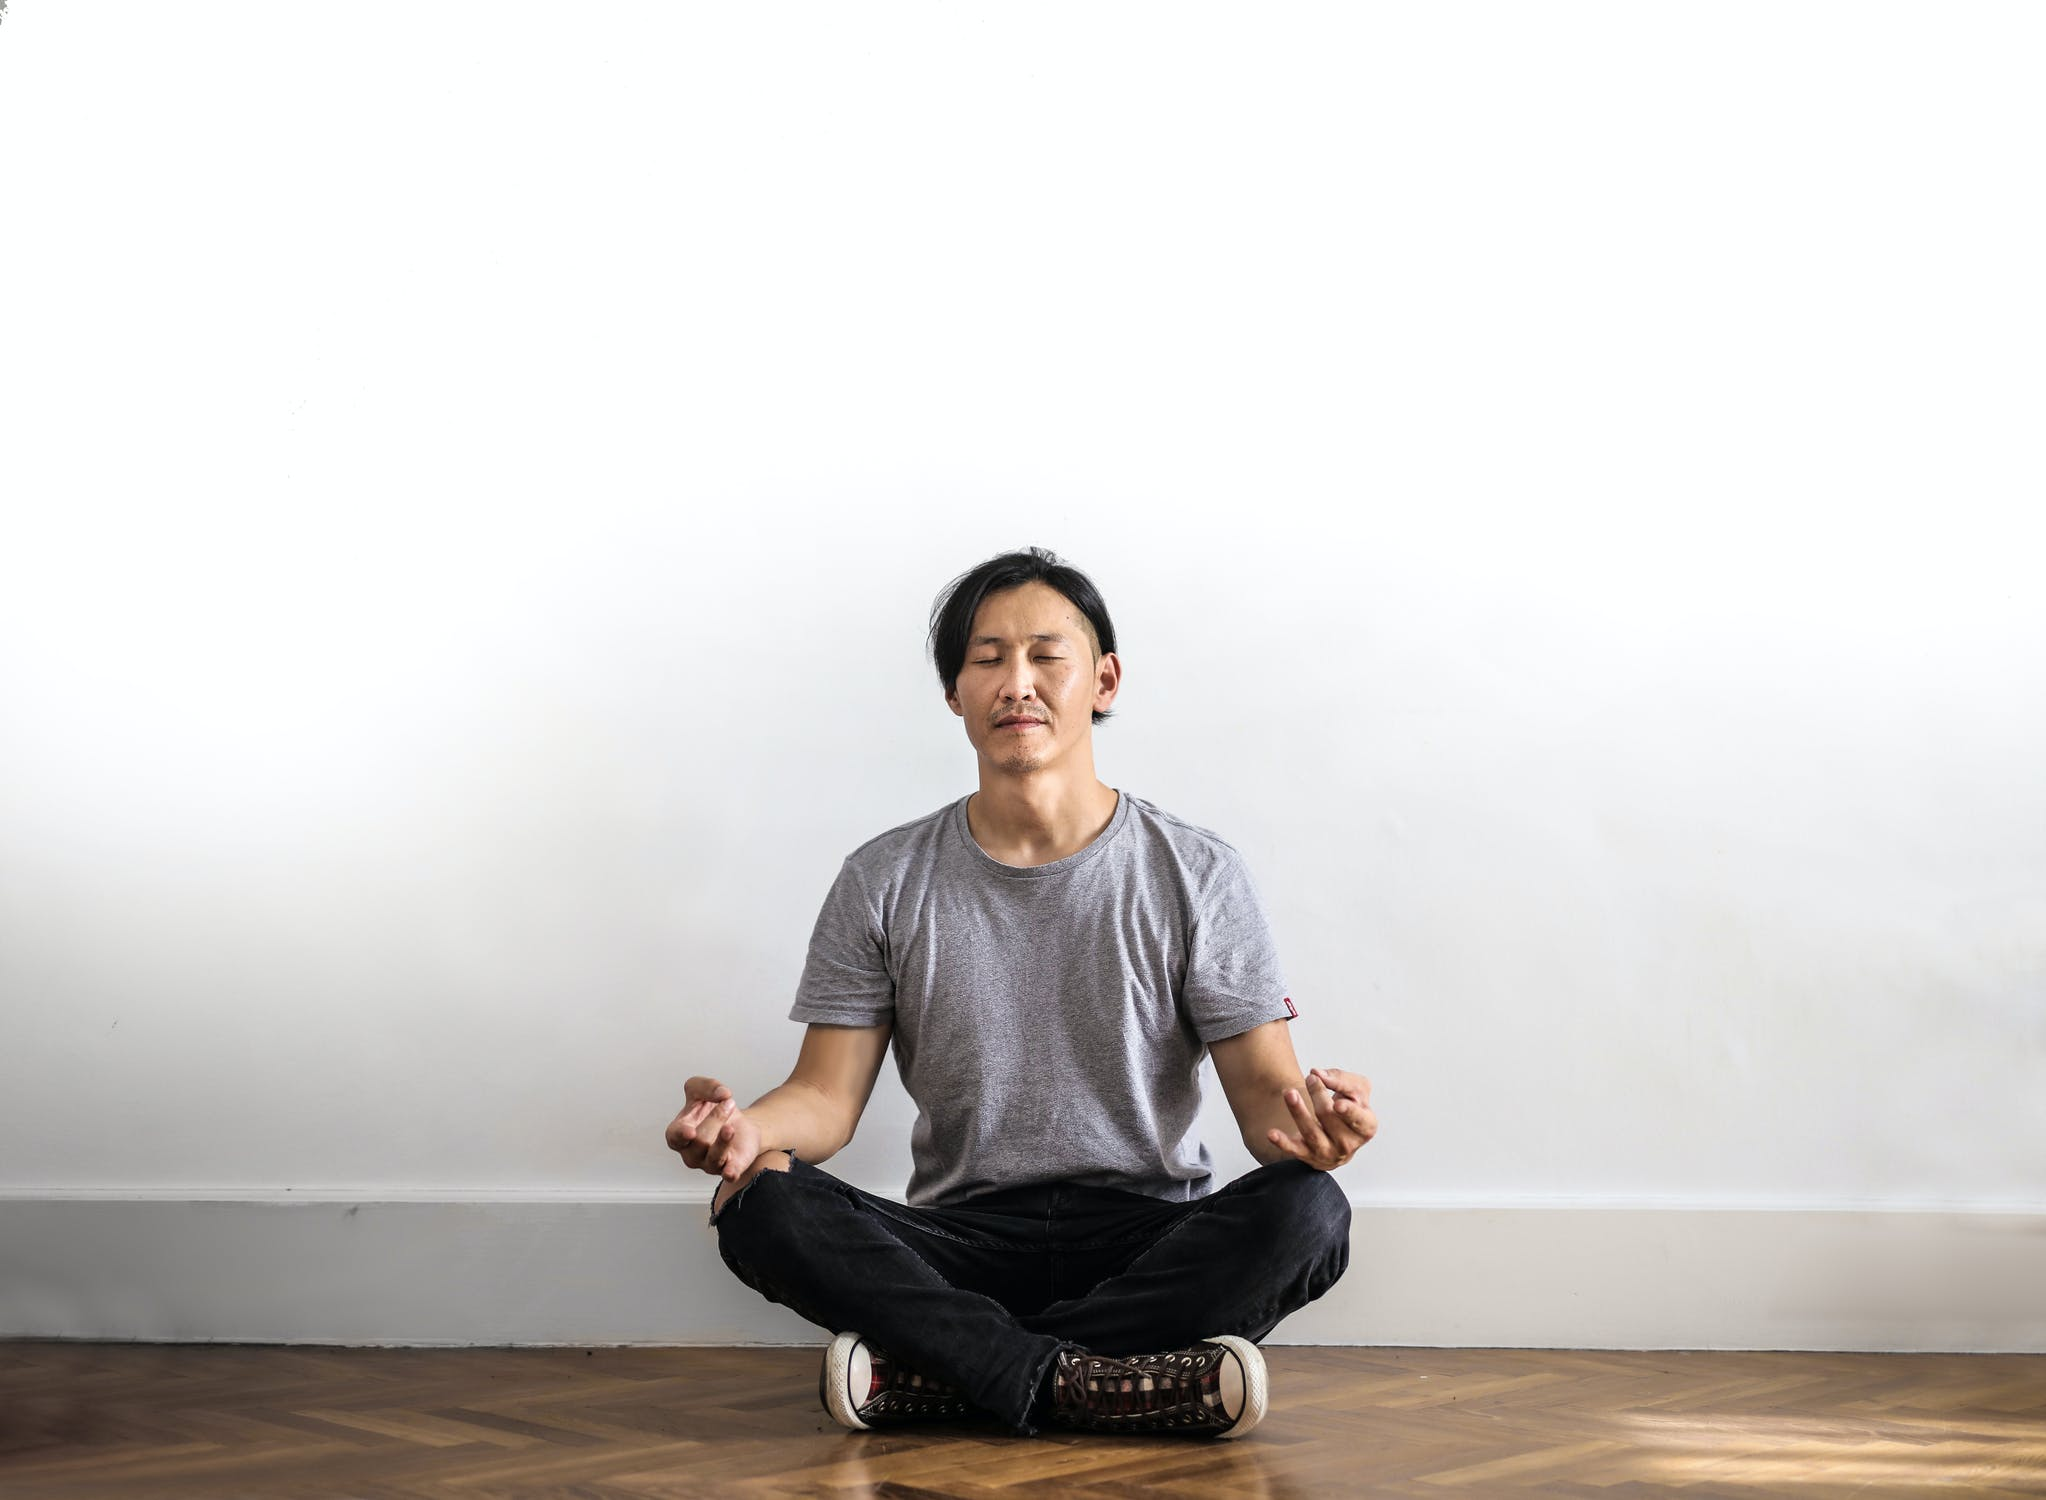 A man meditating in an open room. Photo by pexels user Andrea Piacquadio. Used courtesy of Pexels.com